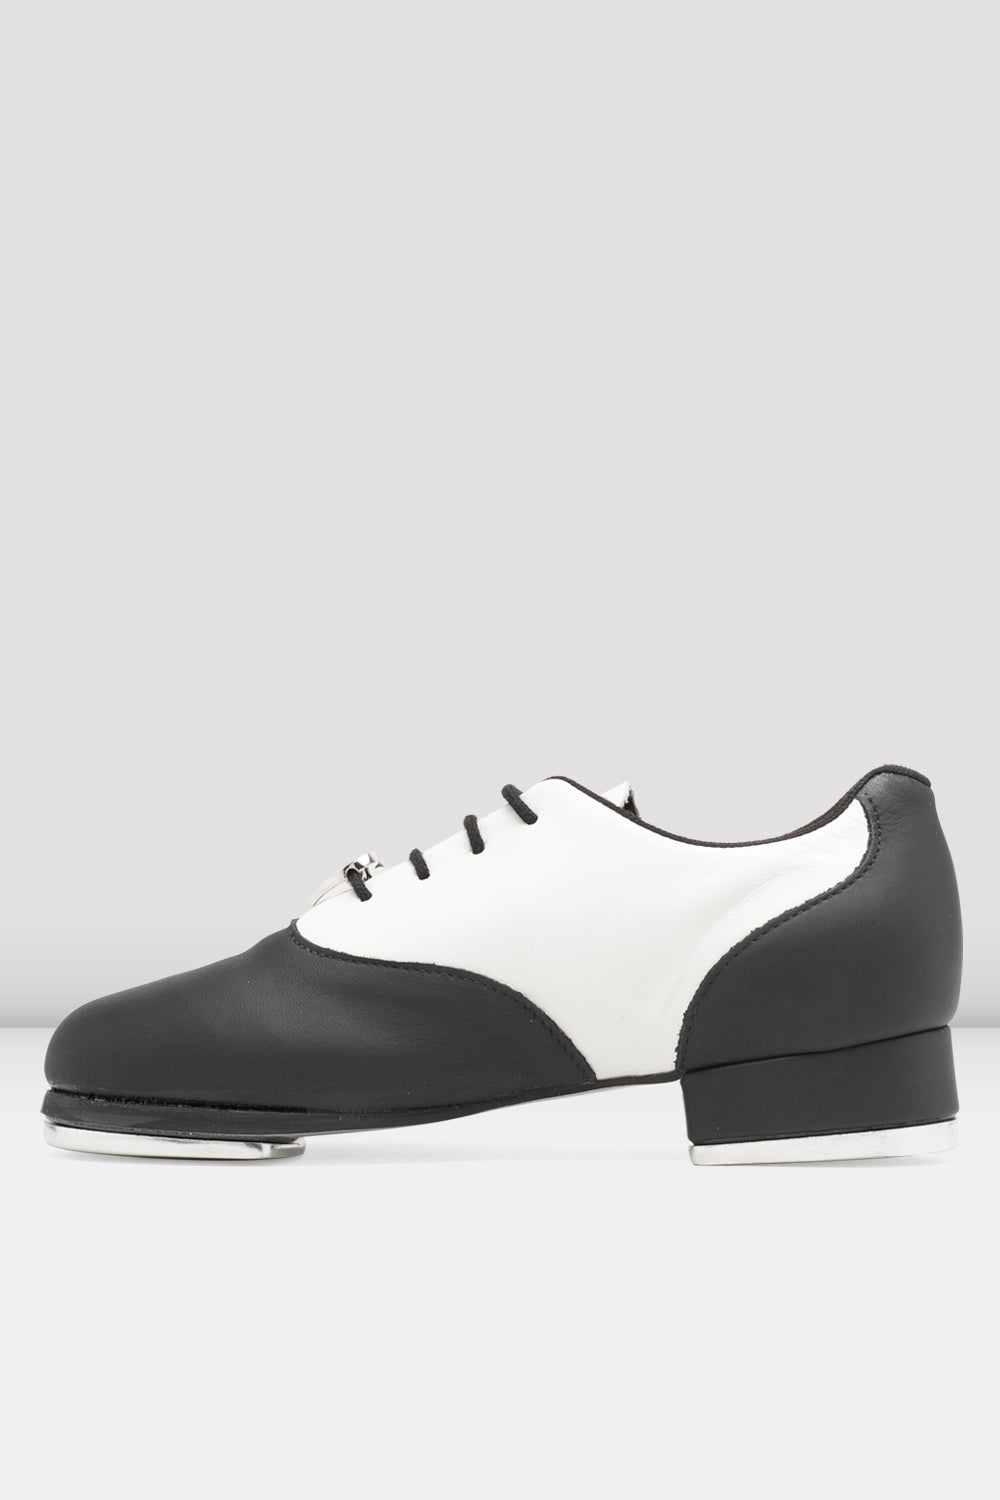 Ladies Chloe And Maud Tap Shoes, Black